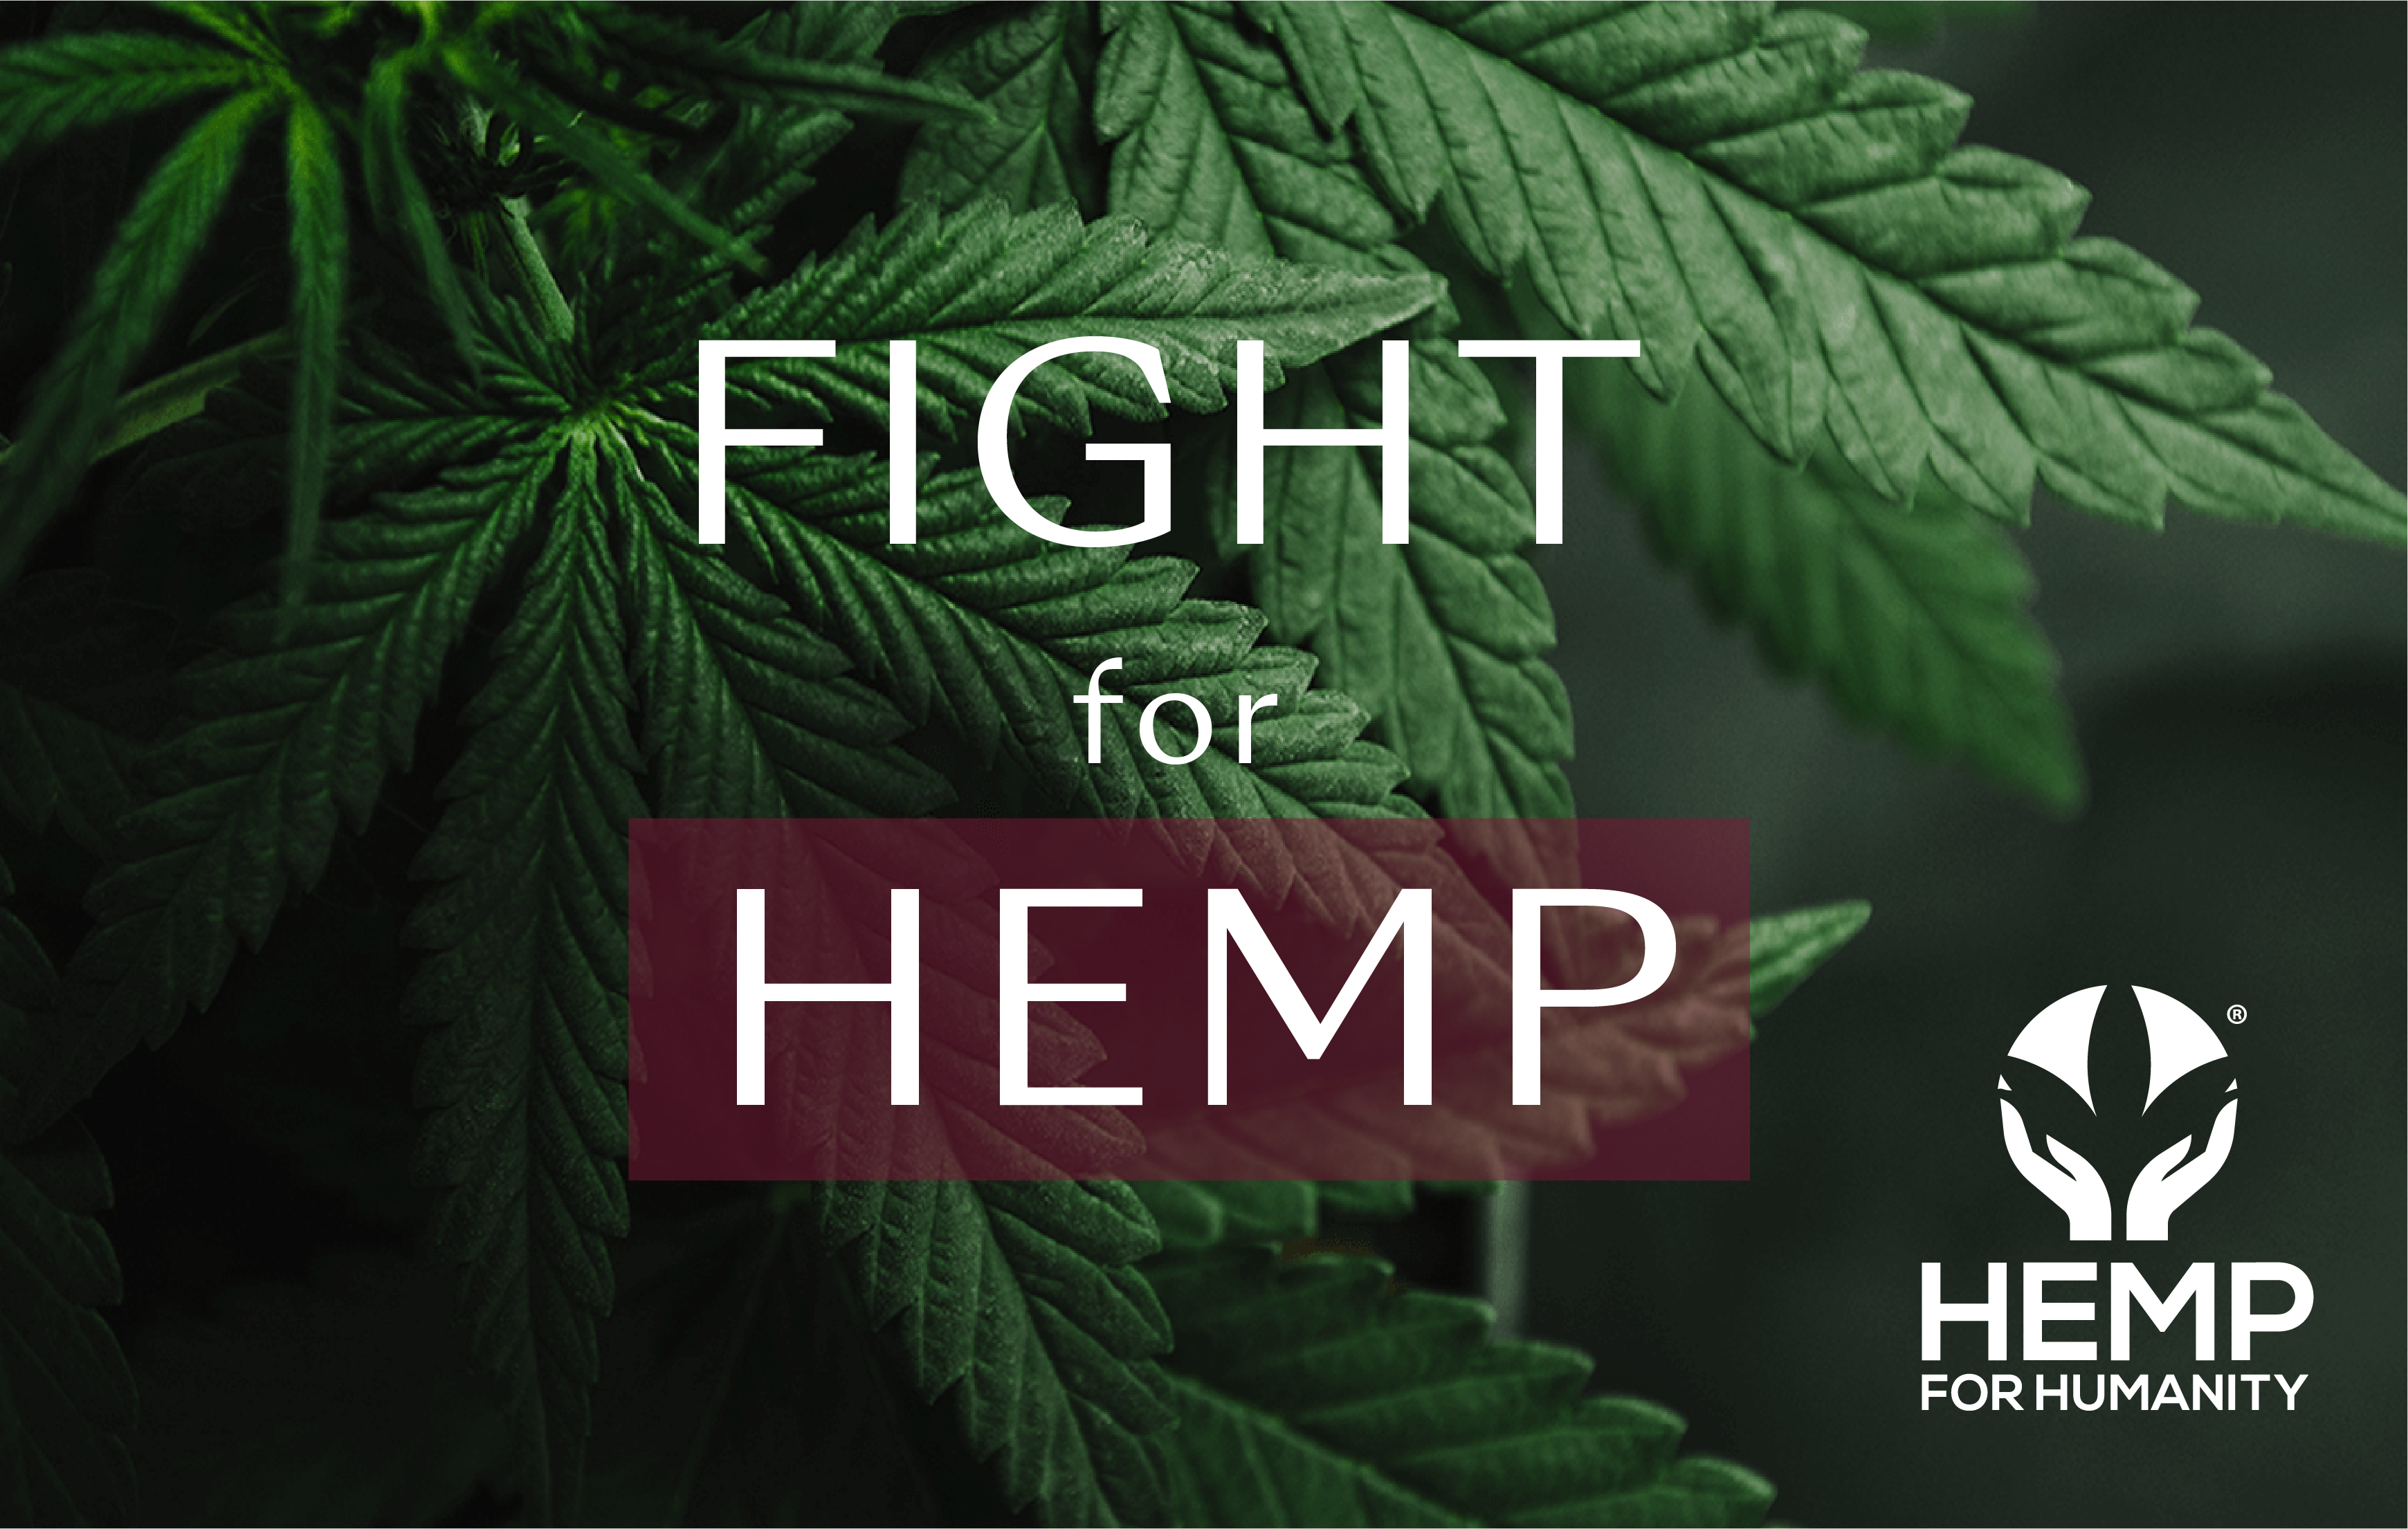 https://hempforhumanity.eu/fight-for-hemp-sign-the-petition/